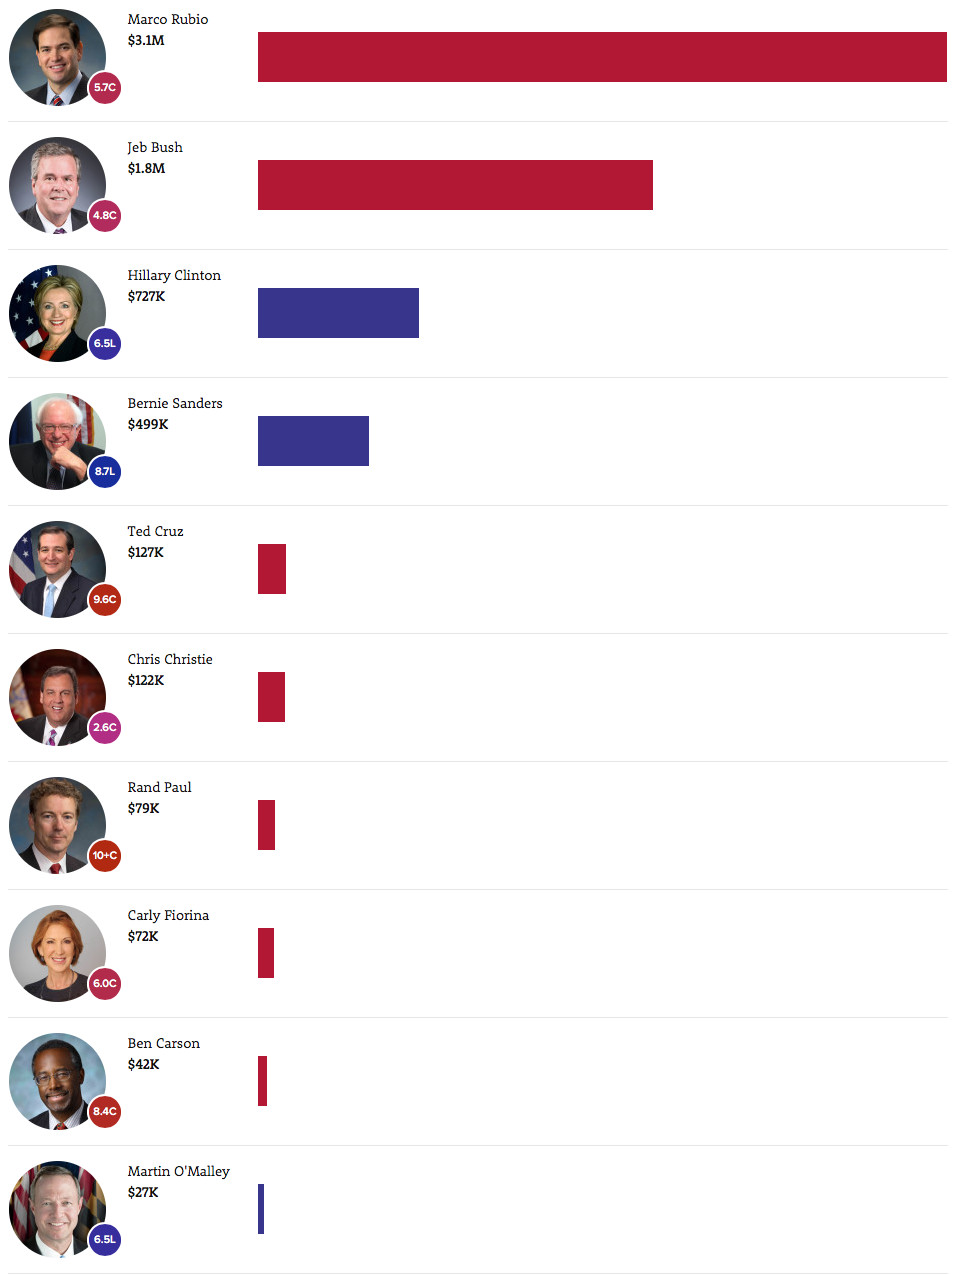 The independent, non-partisan group Crowdpac tracks fundraising by sector. This is the amount each of the candidates for president raised so far through tech sector contributions.